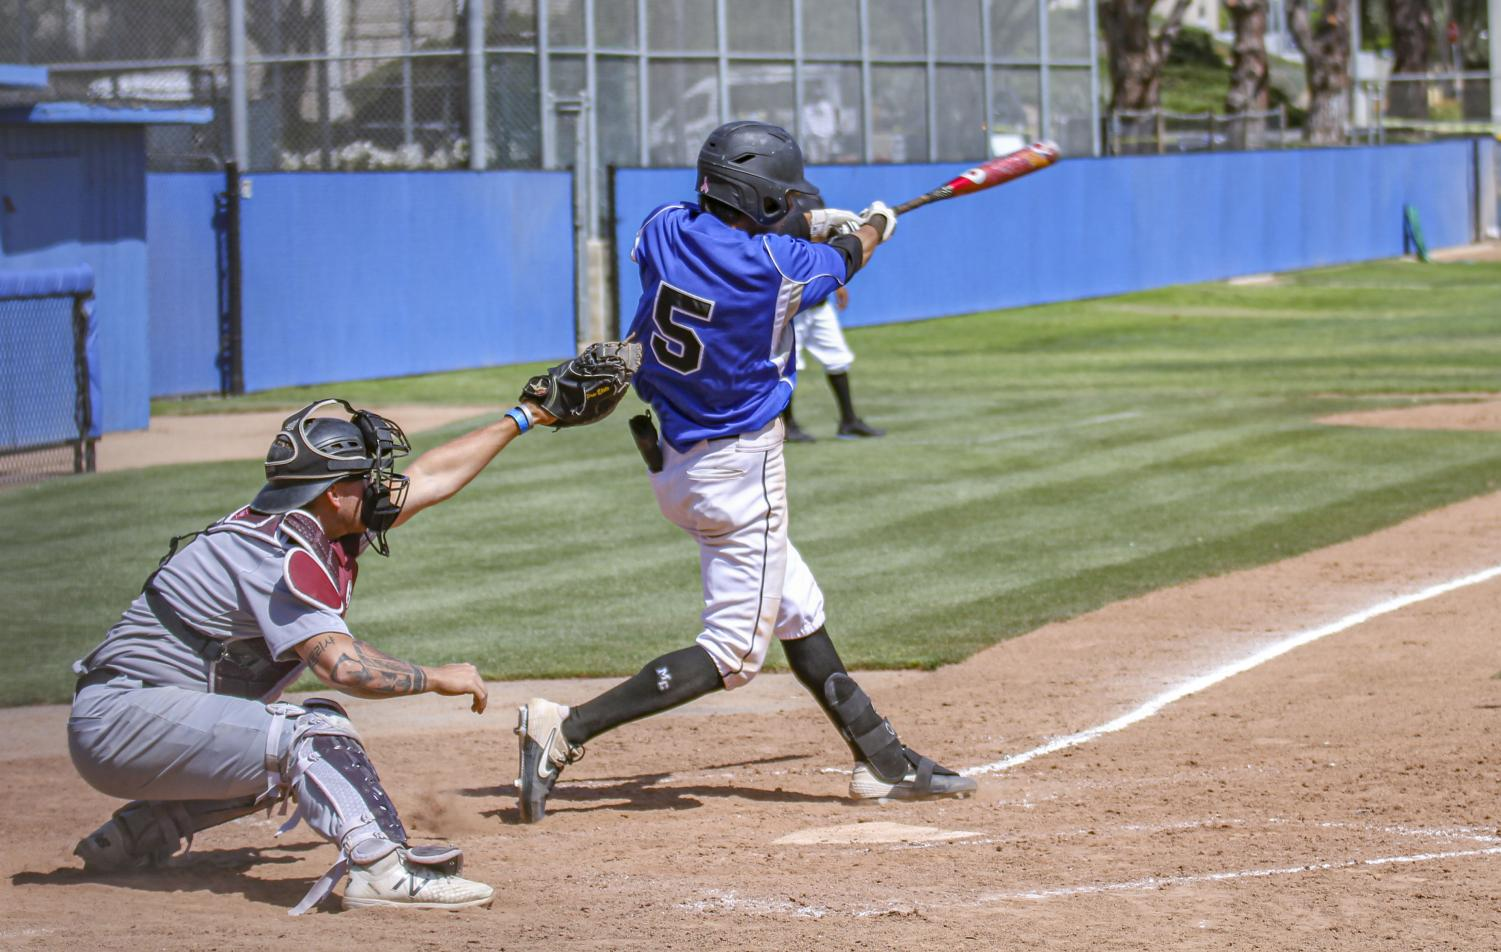 Player 5, Shane Leong-Griegor, batting at the Moorpark VS Antelope Valley double header game on May 22.